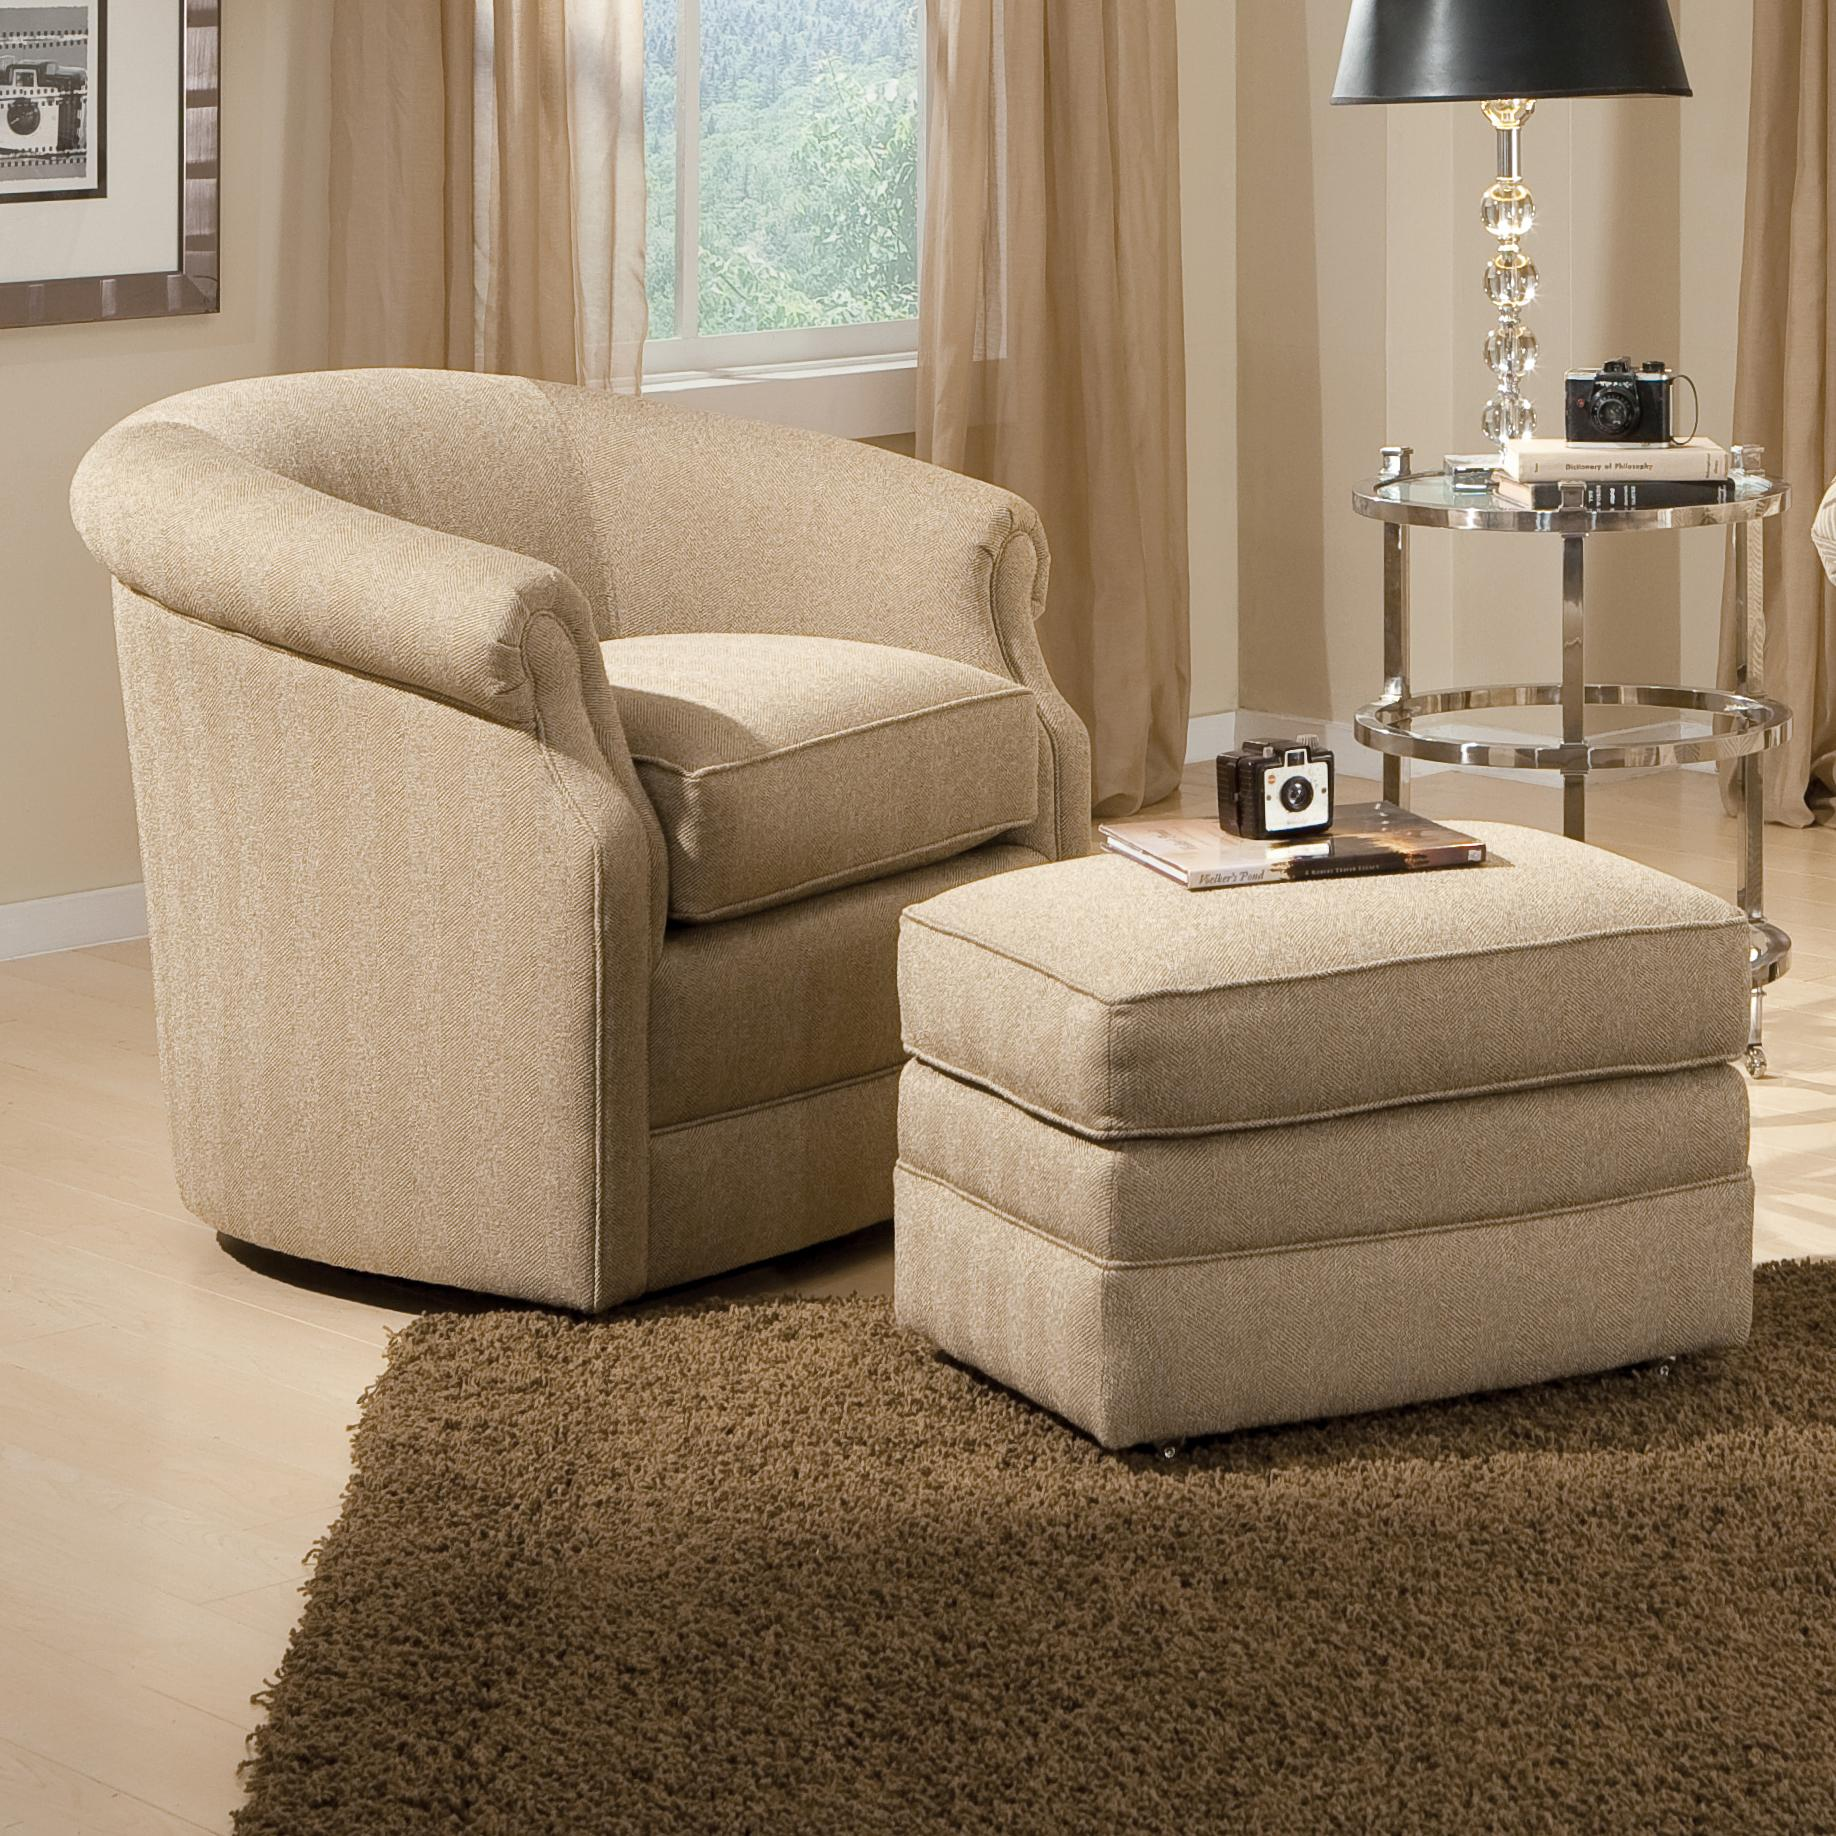 Chairs With Ottomans For Living Room Living Room Chair And Ottoman